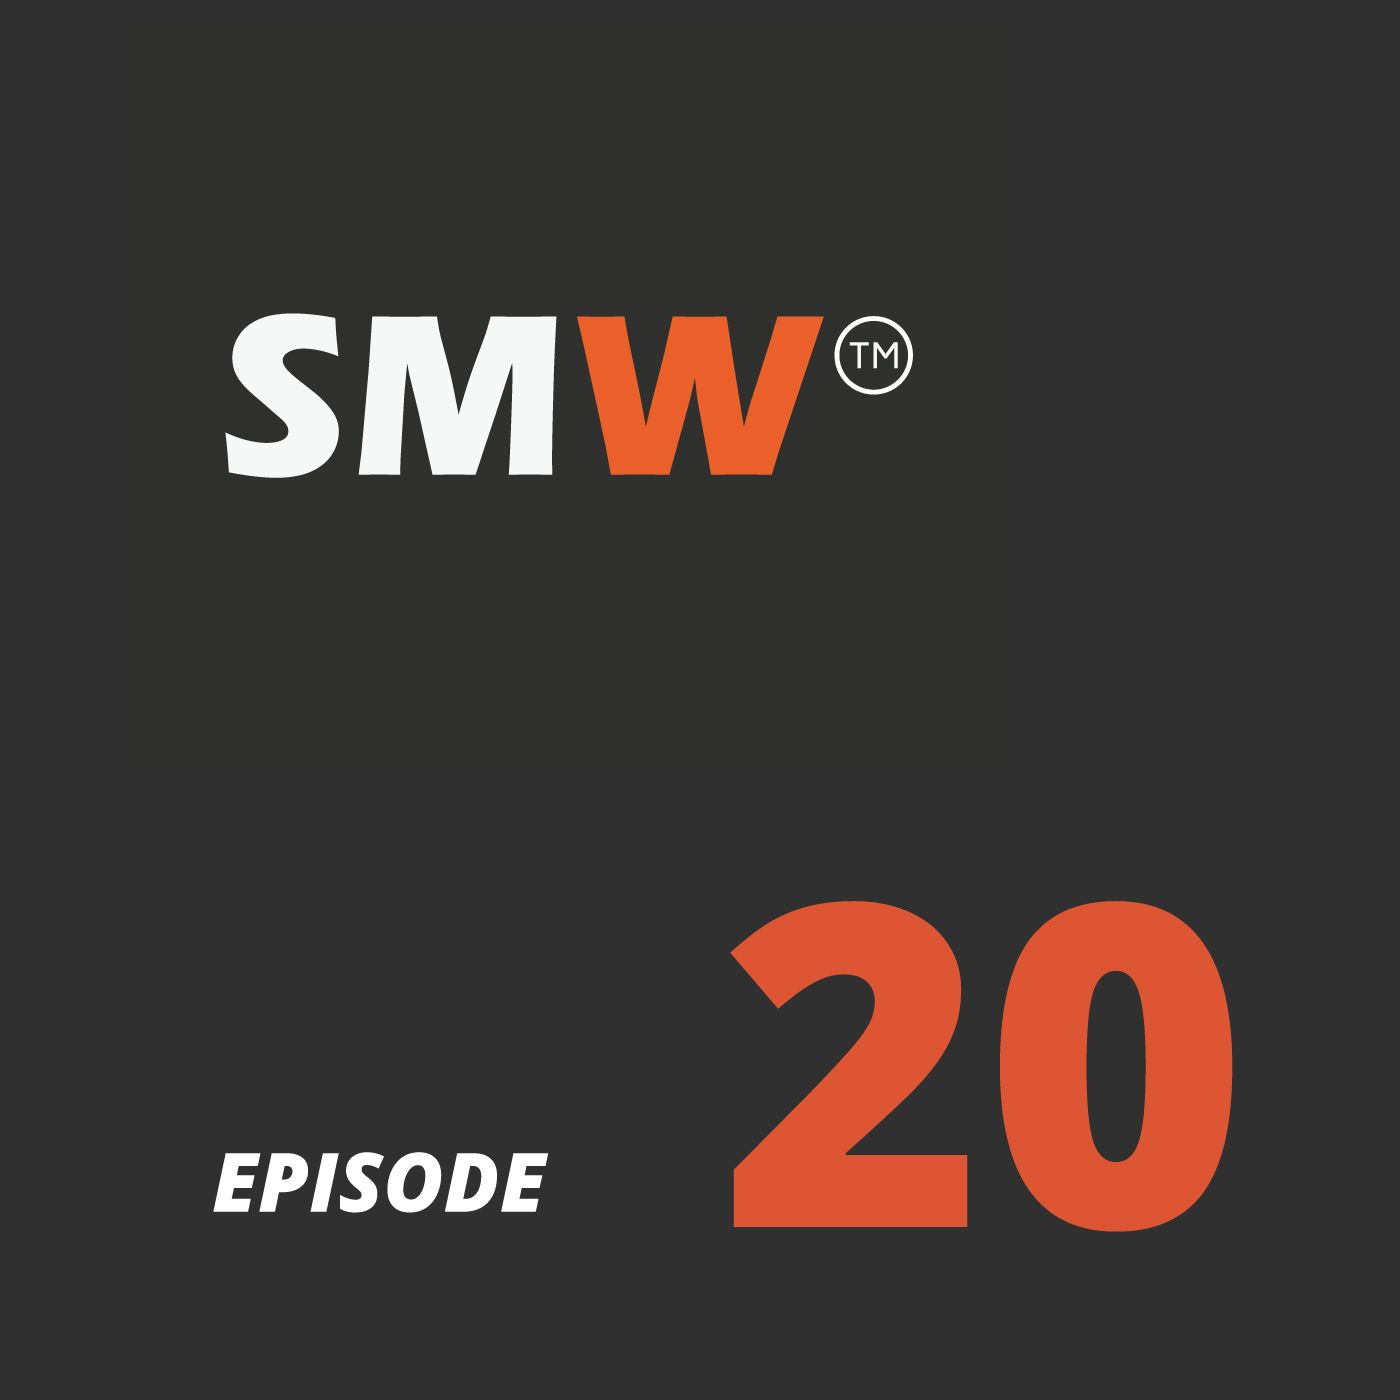 Ep. 20: Discussing The Use Of Platelet-Rich Plasma (PRP)